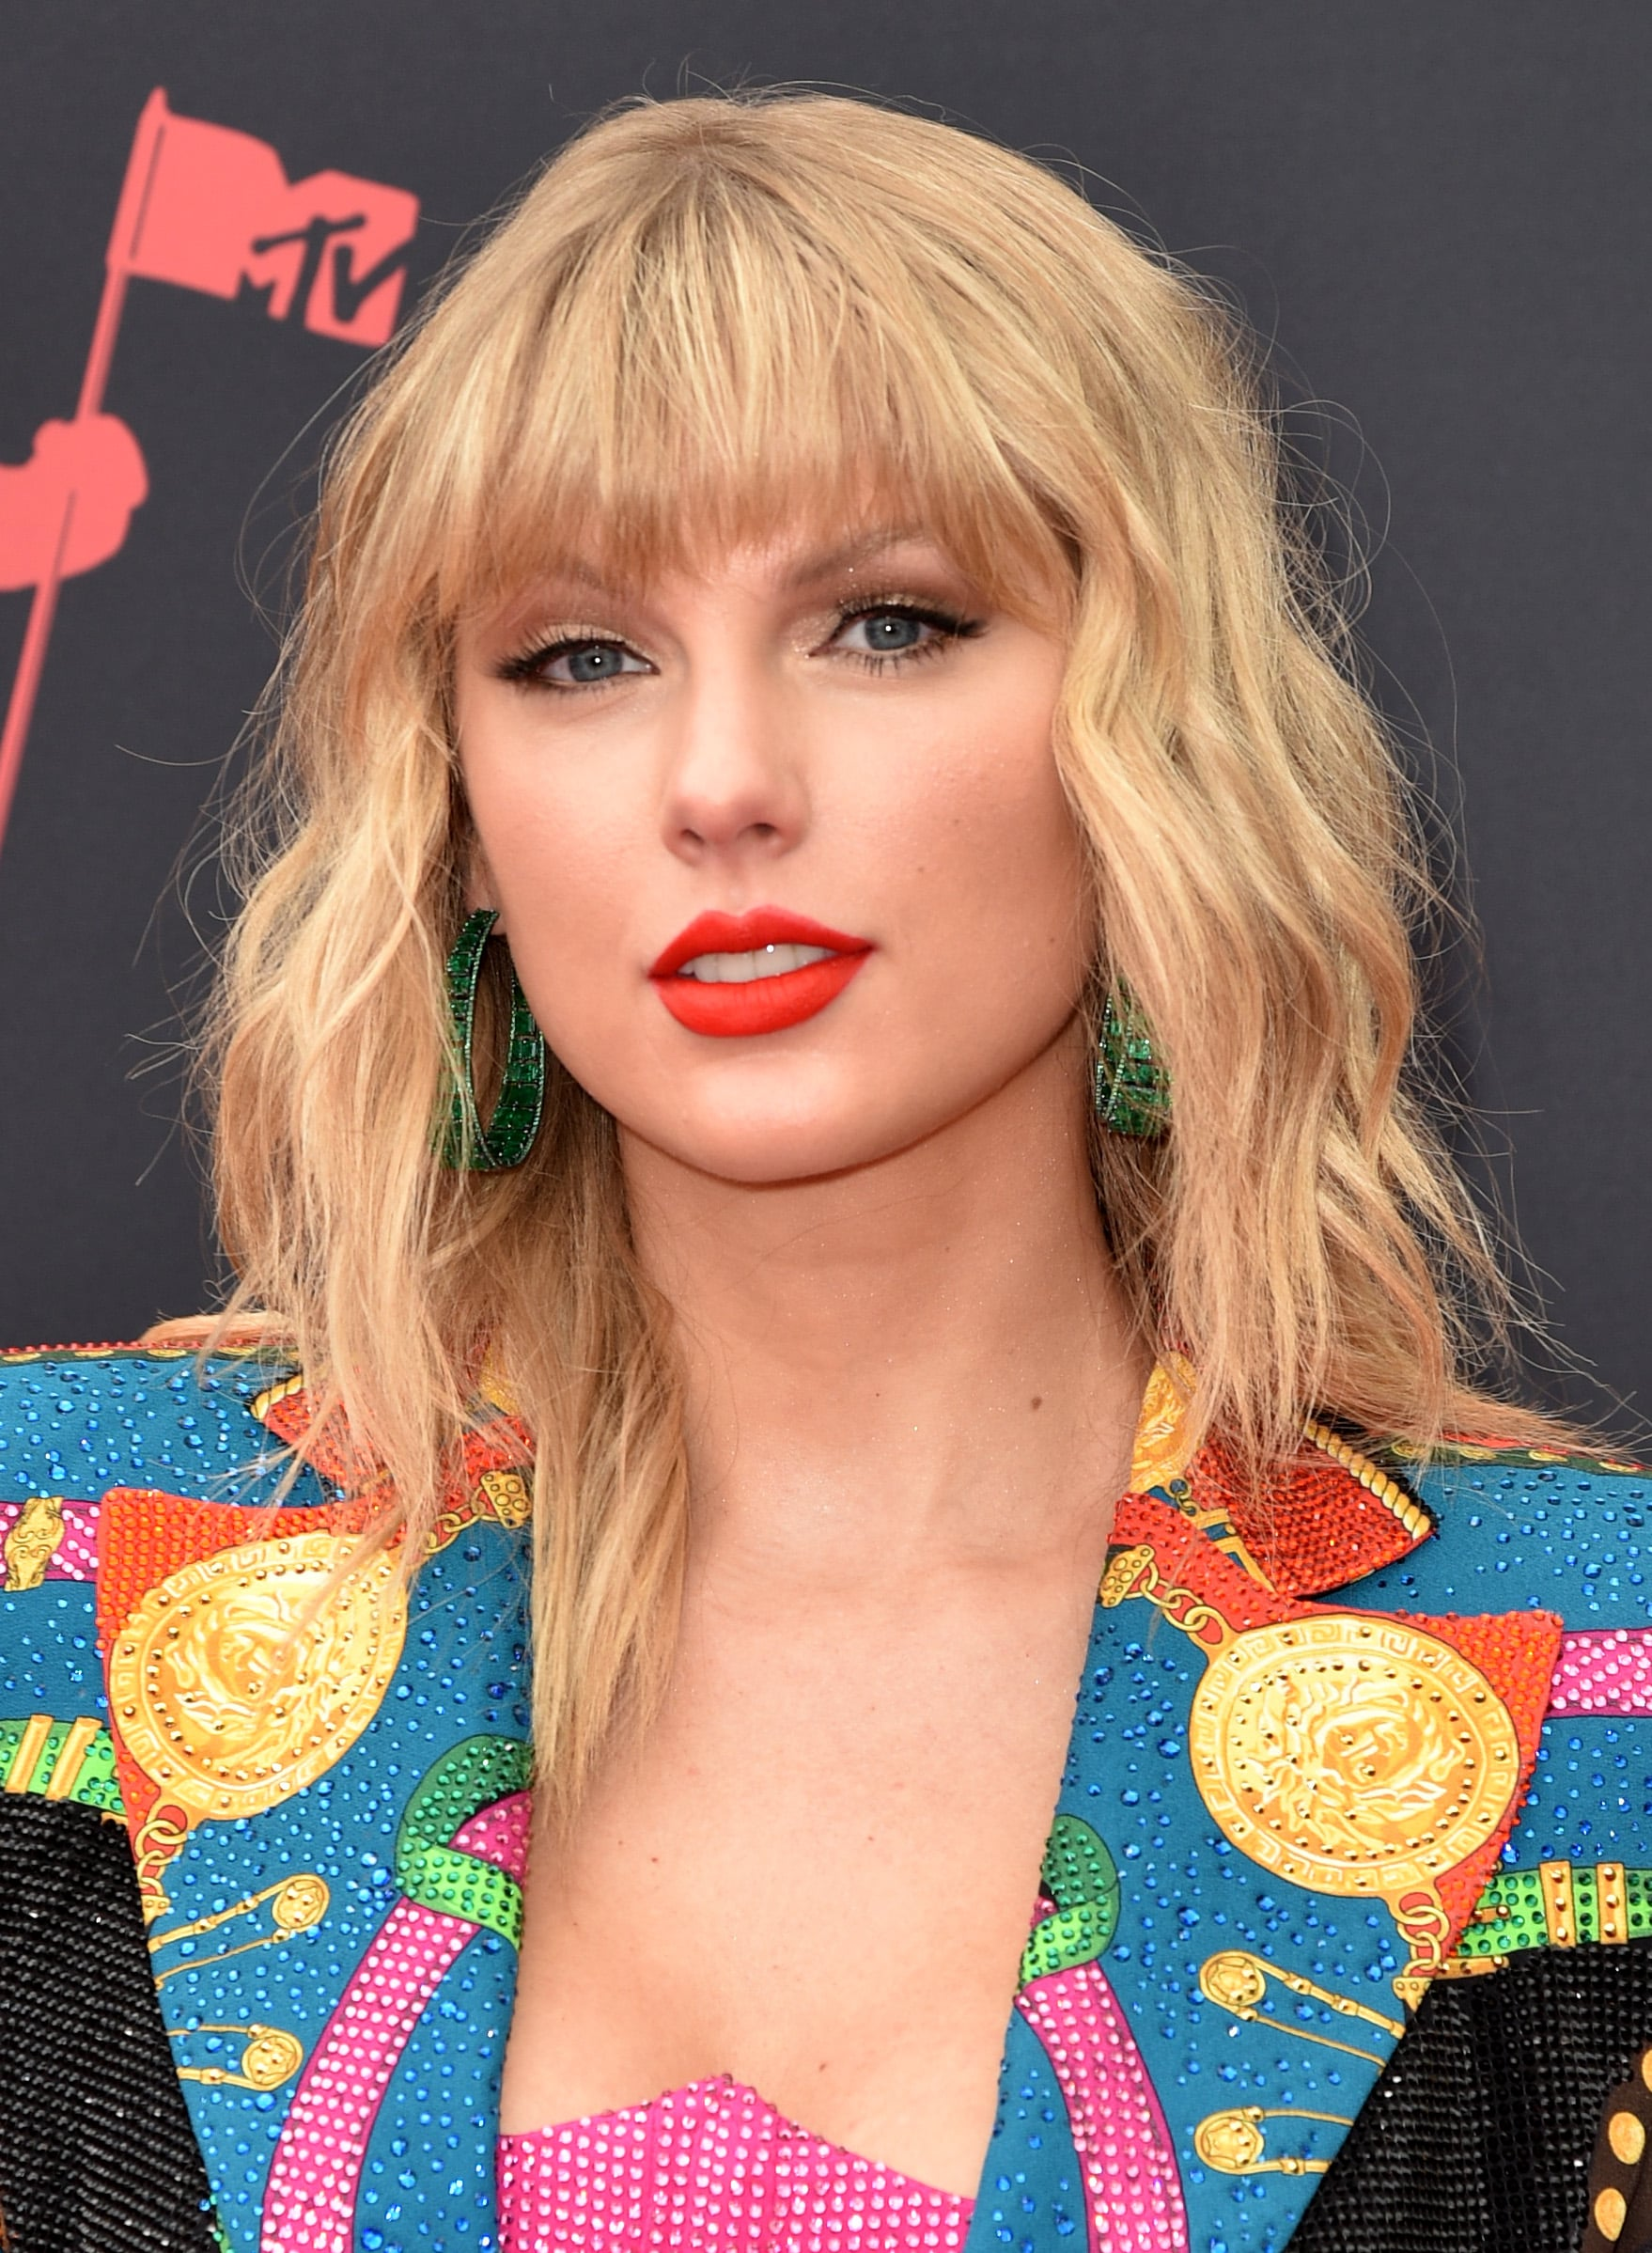 NEWARK, NEW JERSEY - AUGUST 26: Taylor Swift attends the 2019 MTV Video Music Awards at Prudential Centre on August 26, 2019 in Newark, New Jersey. (Photo by Bryan Bedder/WireImage)